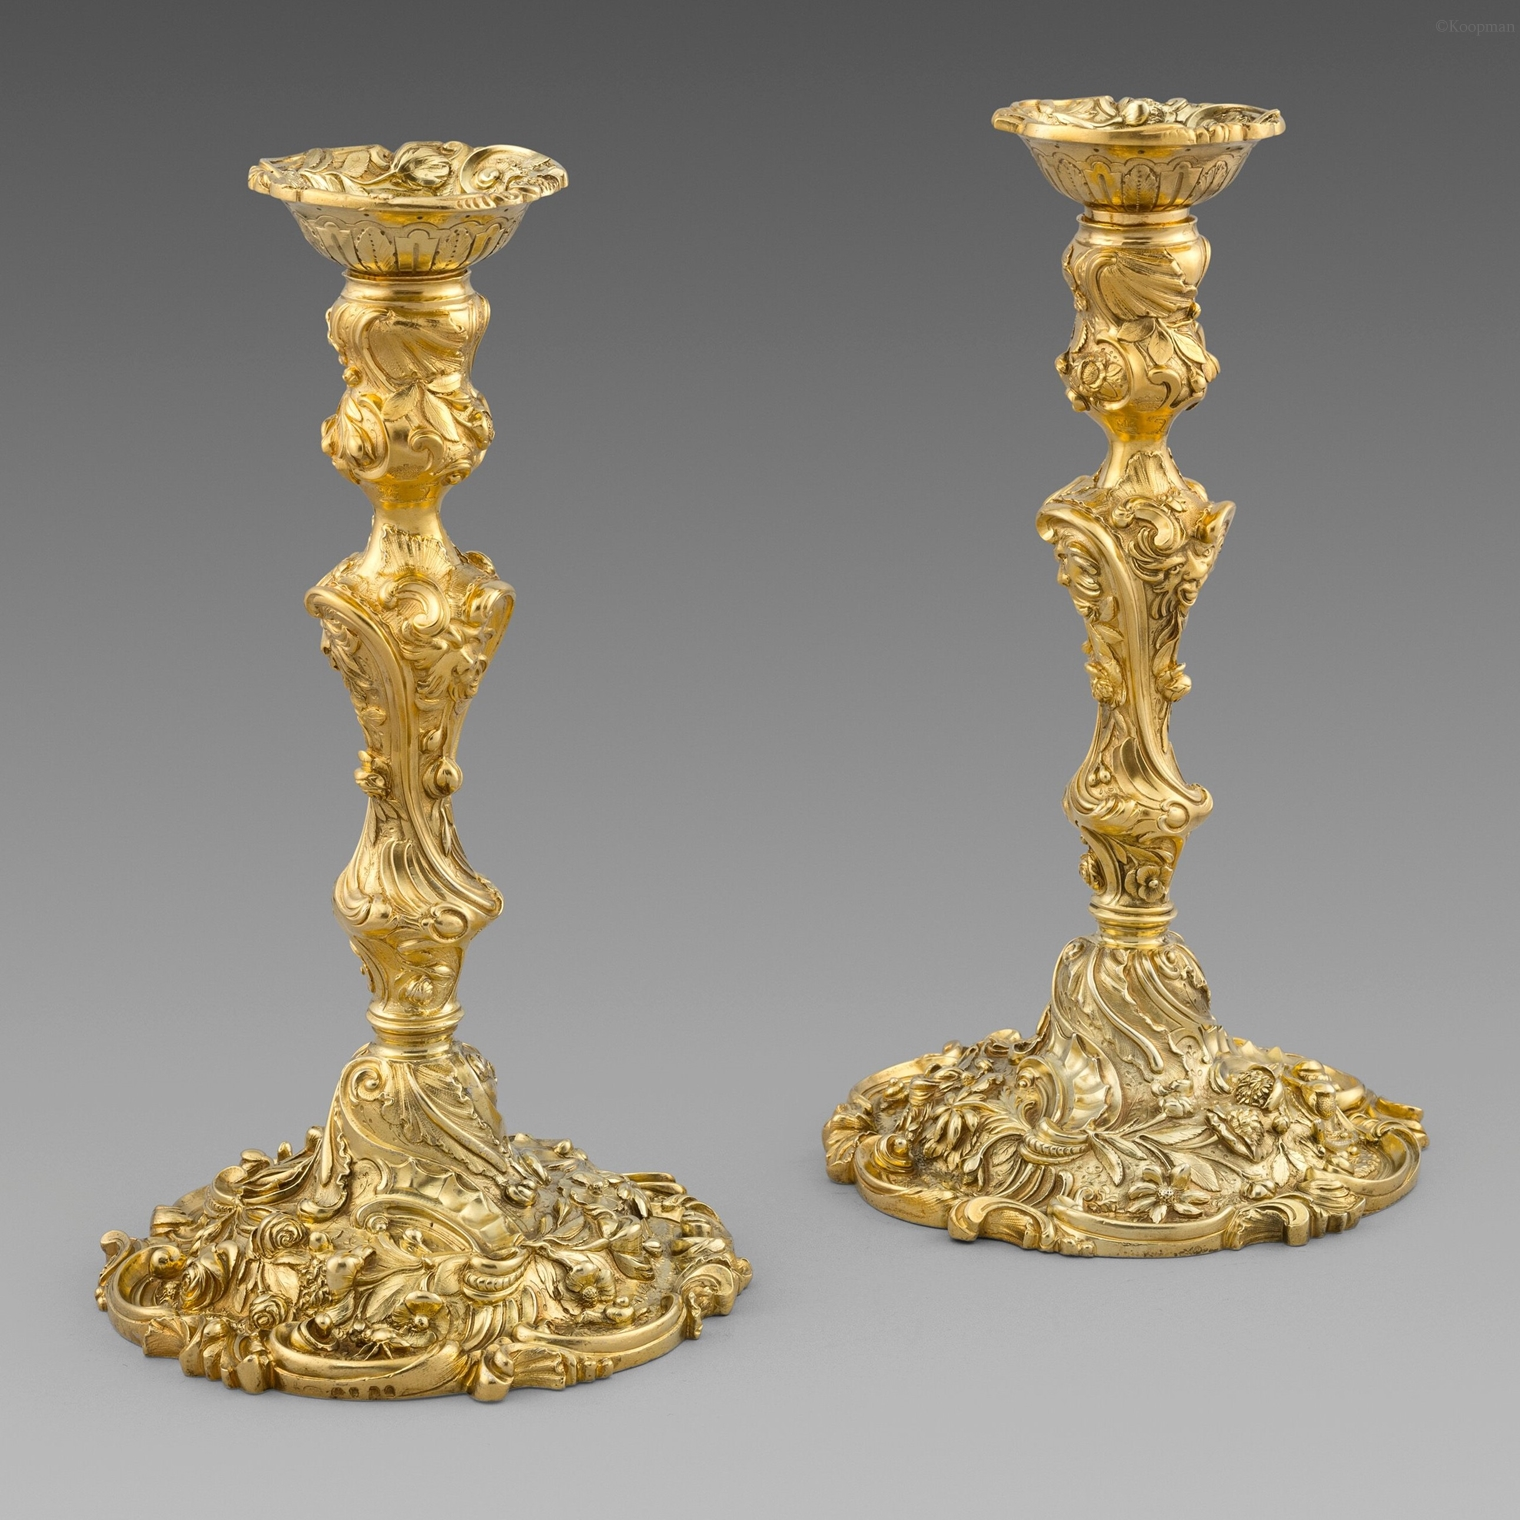 A Superb Pair of Rococo-Revival Candlesticks